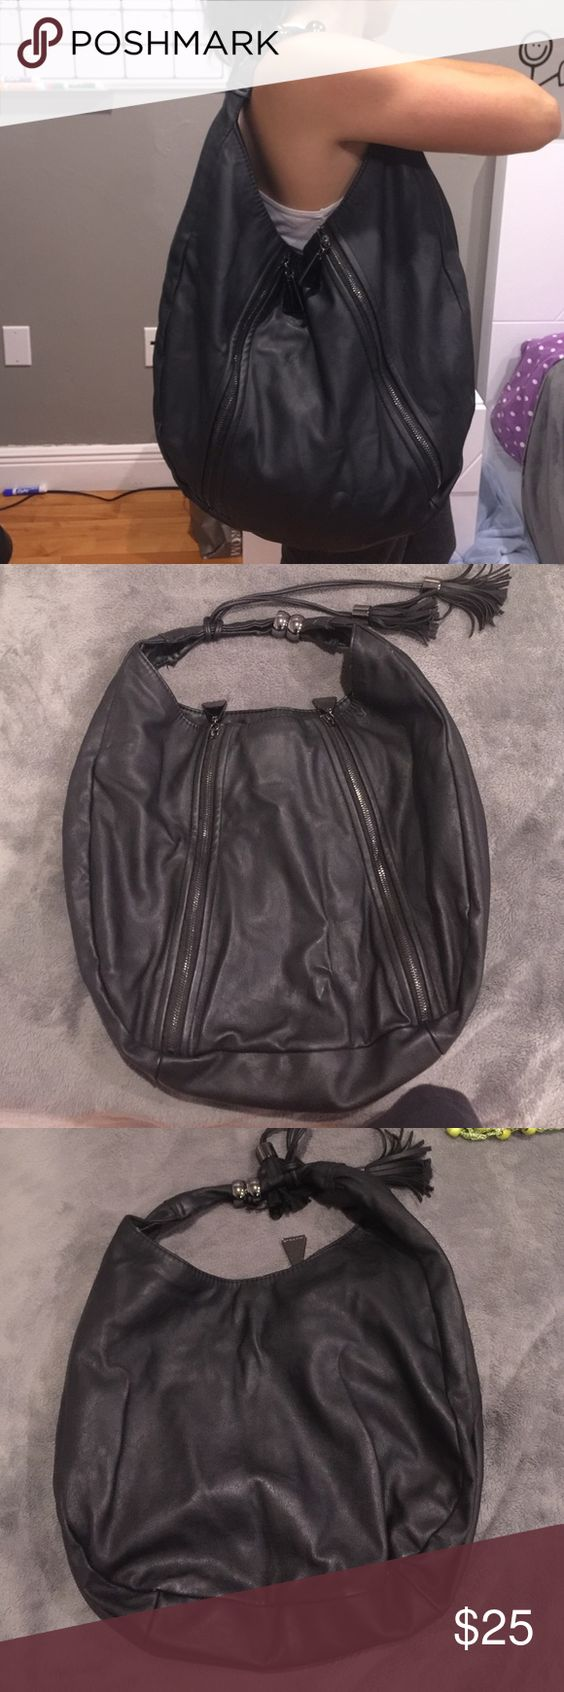 Armani Exchange Large Tote Super cute bag made from leather, great material. Shows some signs of wear. Armani Exchange Bags Totes